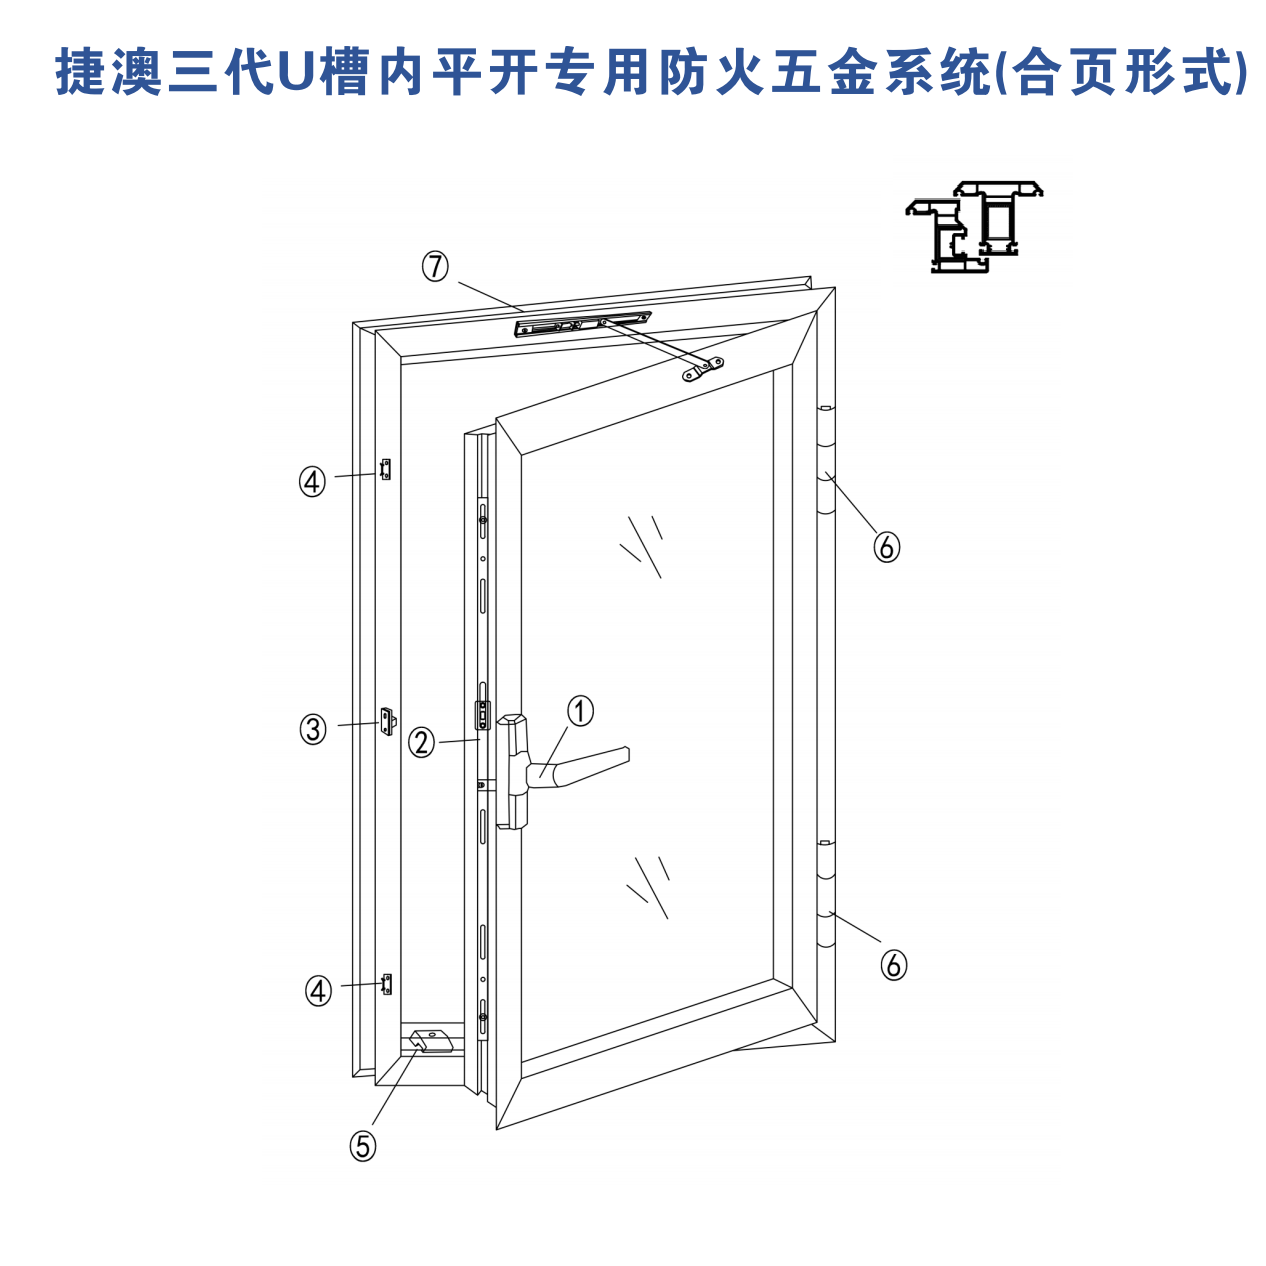 Special fireproof hardware system for flat opening in U slot of Jieao (hinge form)